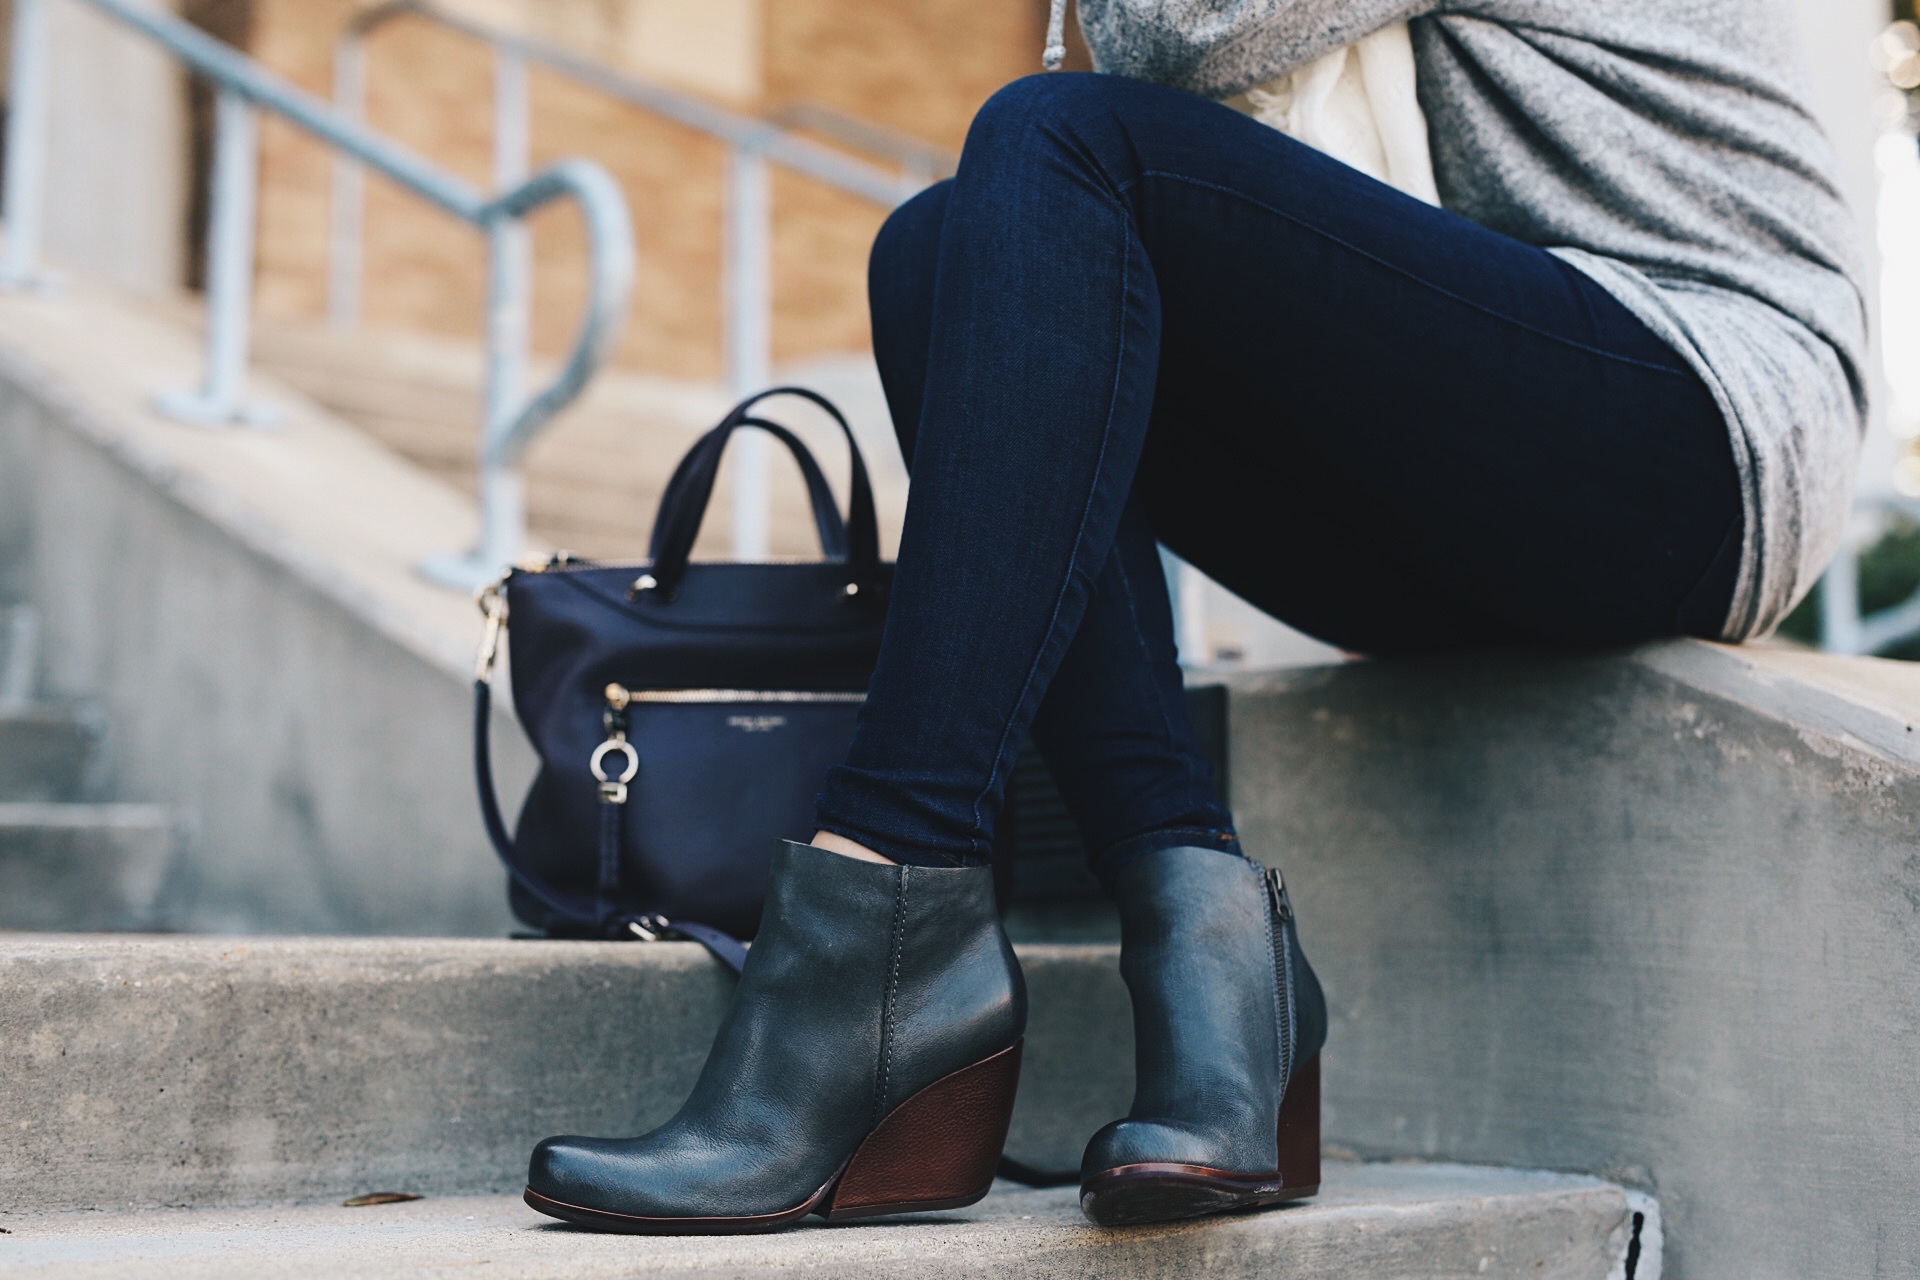 DTKAustin shares why she loves leather shoe brand Kork-Ease and why you should be online shopping at Zappos. | fall fashion tips | fall outfit ideas | fall style tips | what to wear for fall | cool weather fashion | fashion for fall | style tips for fall | outfit ideas for fall || Dressed to Kill